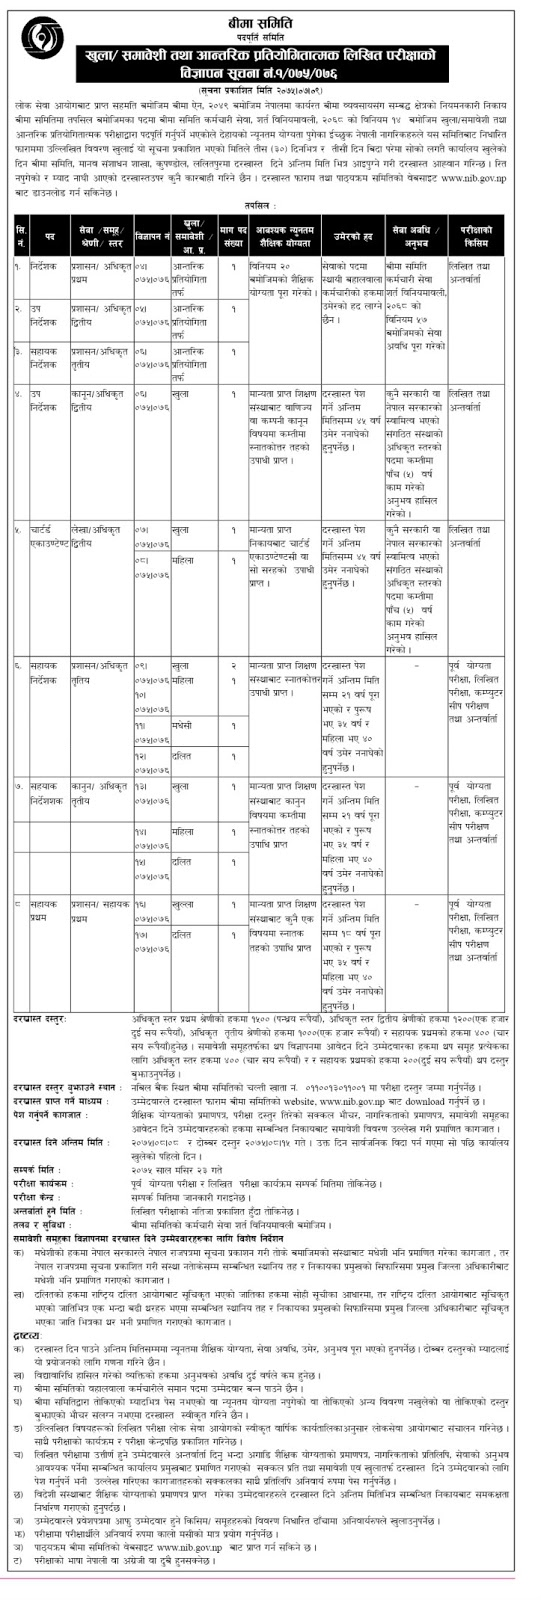 Bima Samitee Nepal Announced Various Post Vacancies for Open / Samabesi And Internal Competition